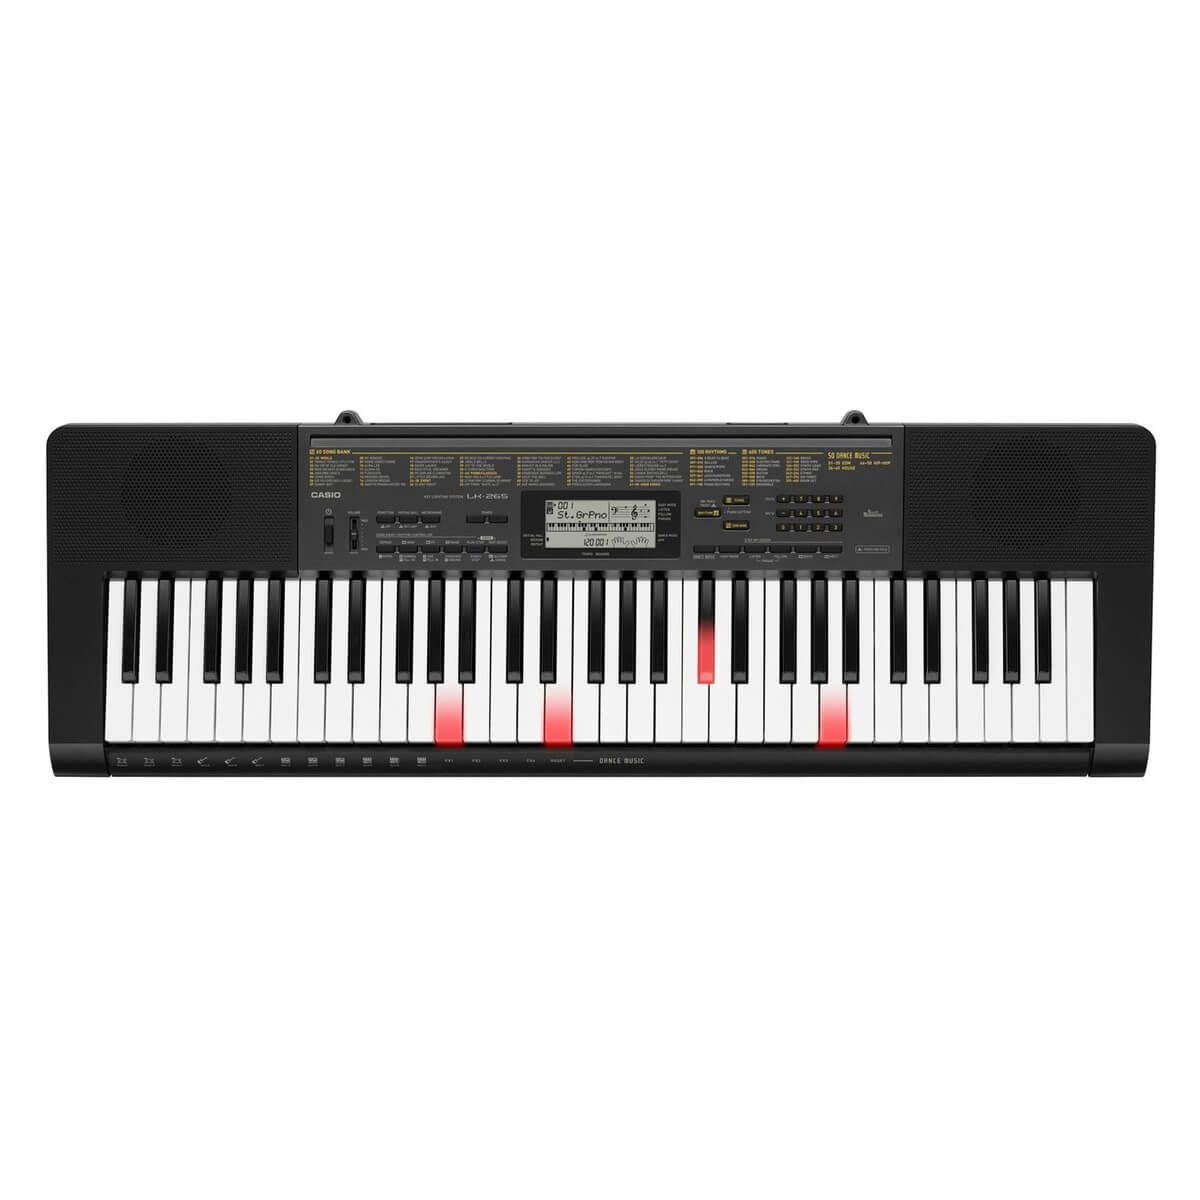 Casio LK-265 keyboard